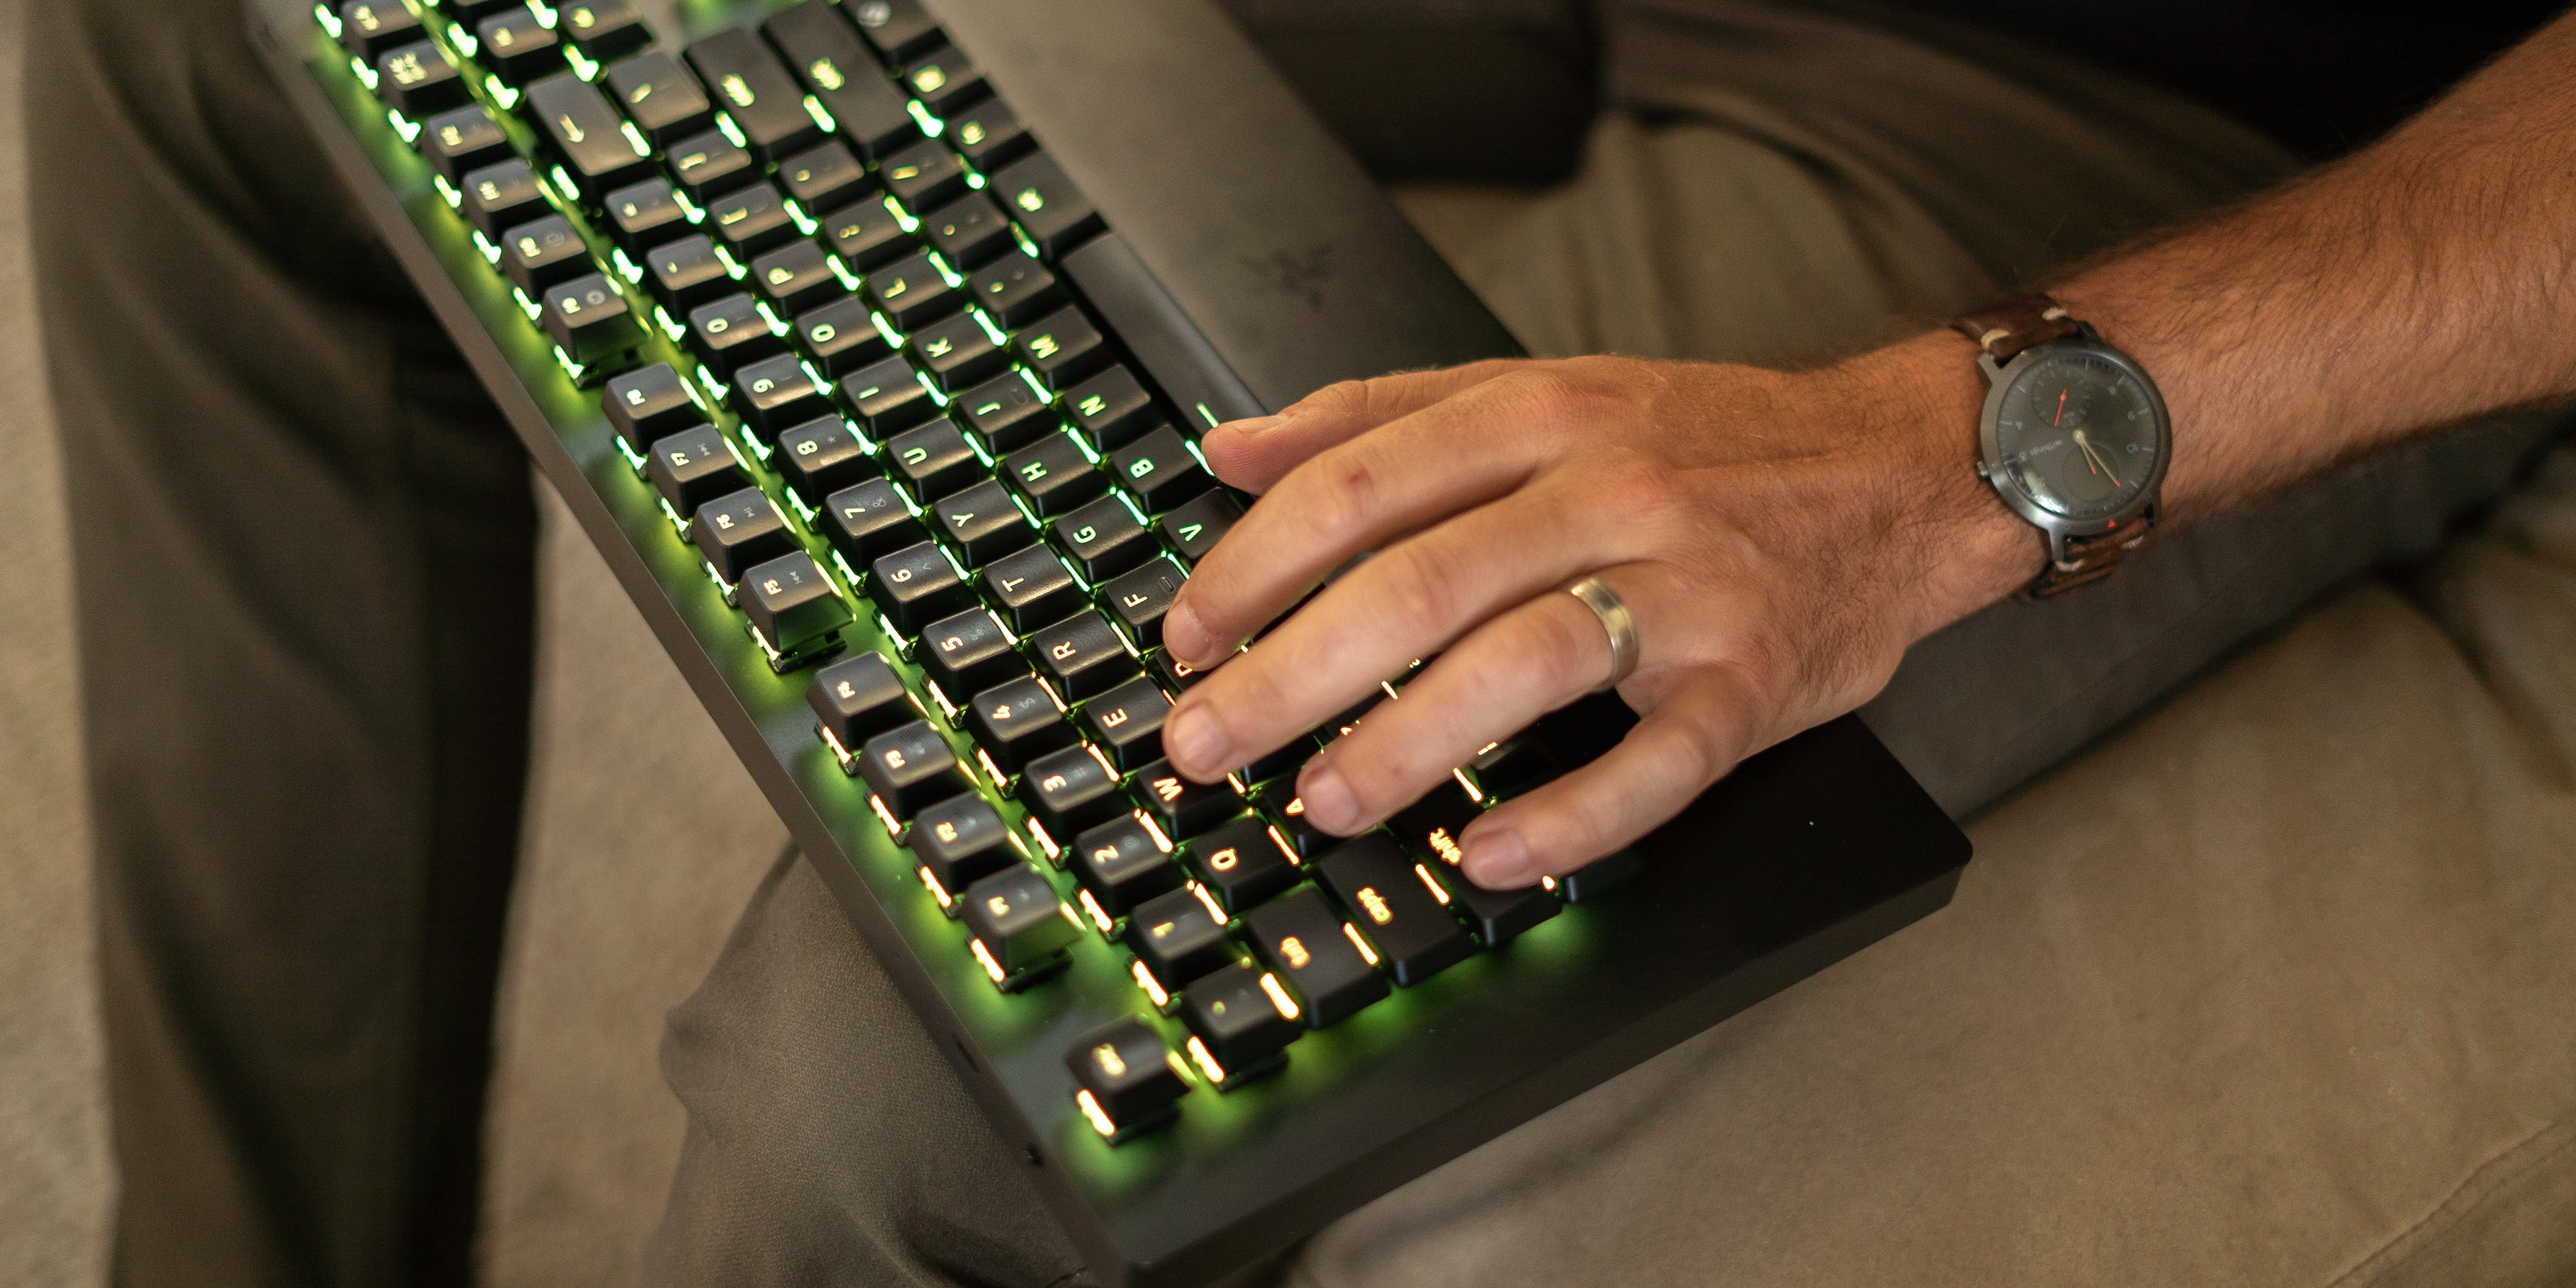 Using the Razer Turret Keyboard on the couch